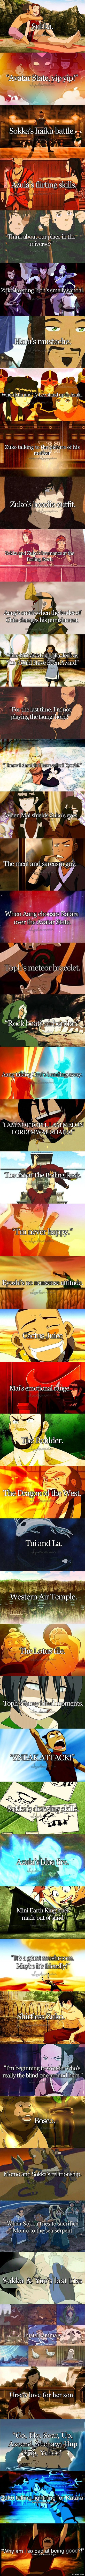 Why I love Avatar: The Last Airbender <3.When Aang chooses Katara over the avatar state <3.Well that's amazing just saw this episode